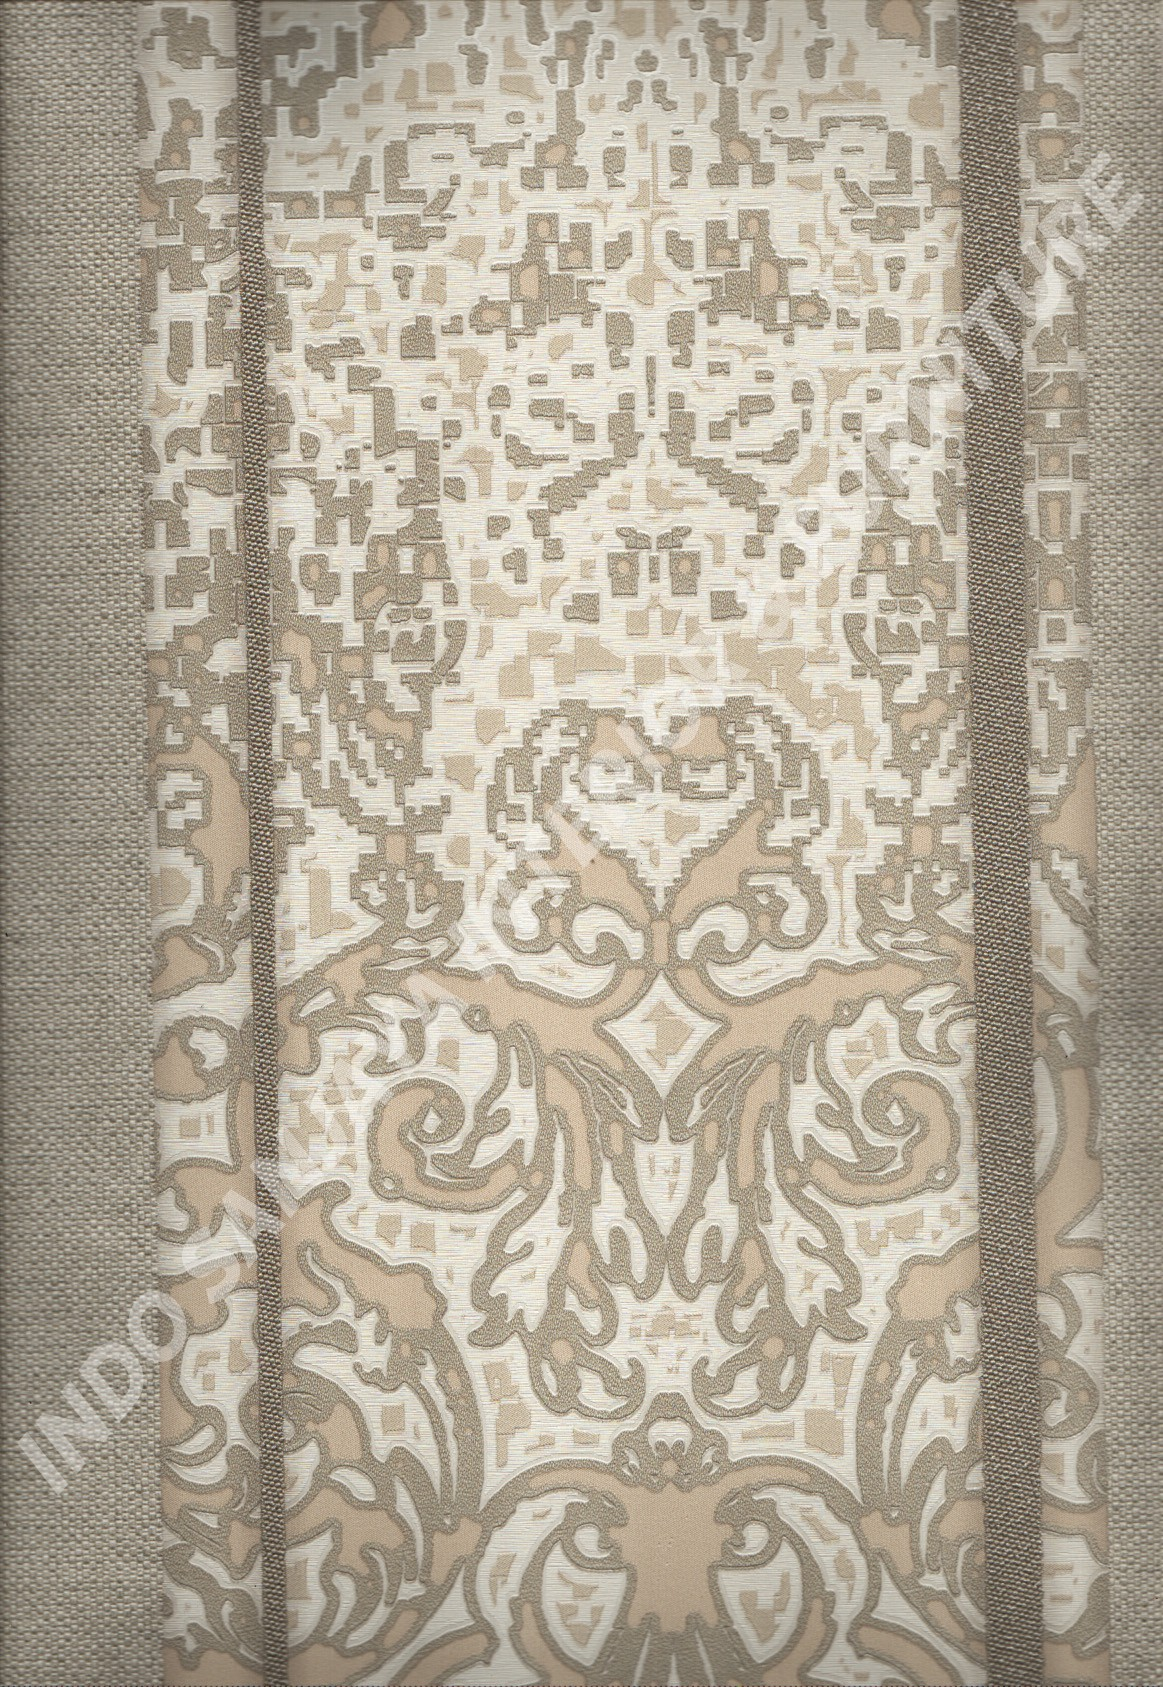 wallpaper   Wallpaper Bunga 3075:3075 corak  warna